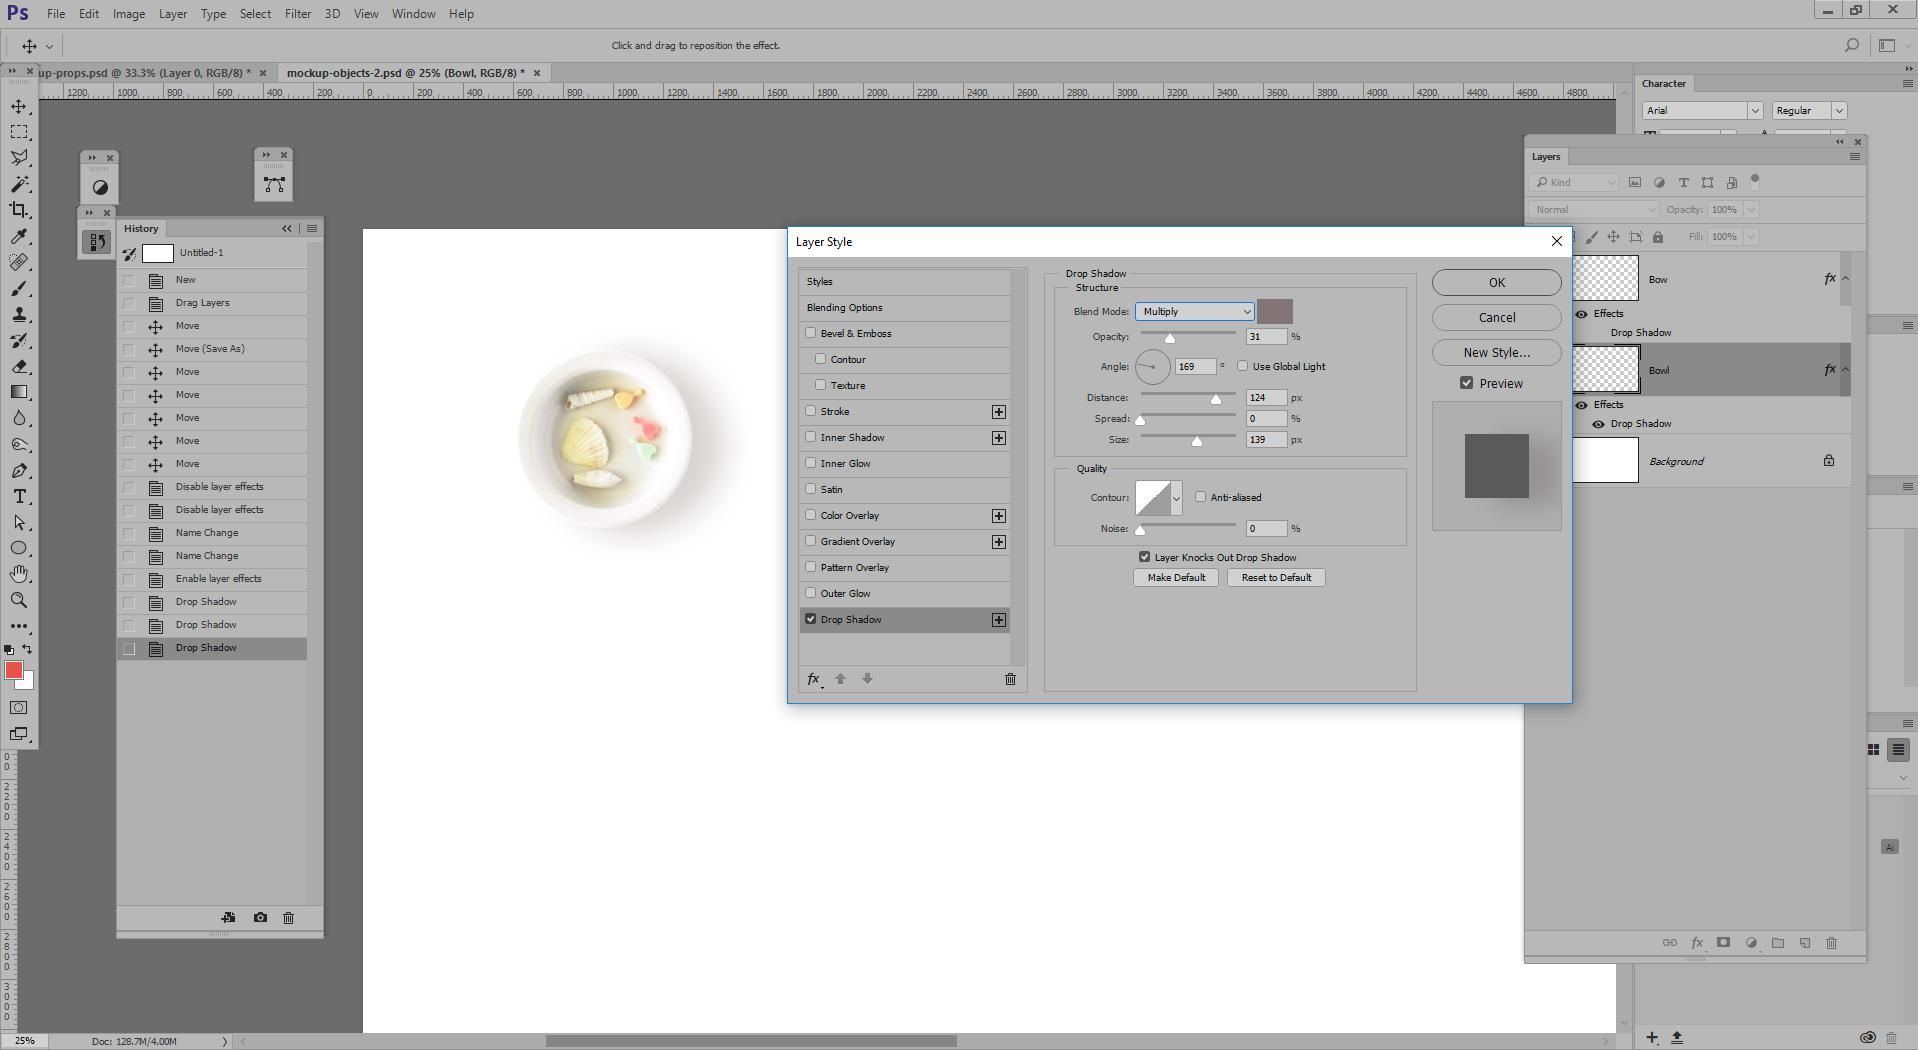 Applying drop shadow to bowl on white background. Your settings would be different on a darker background.